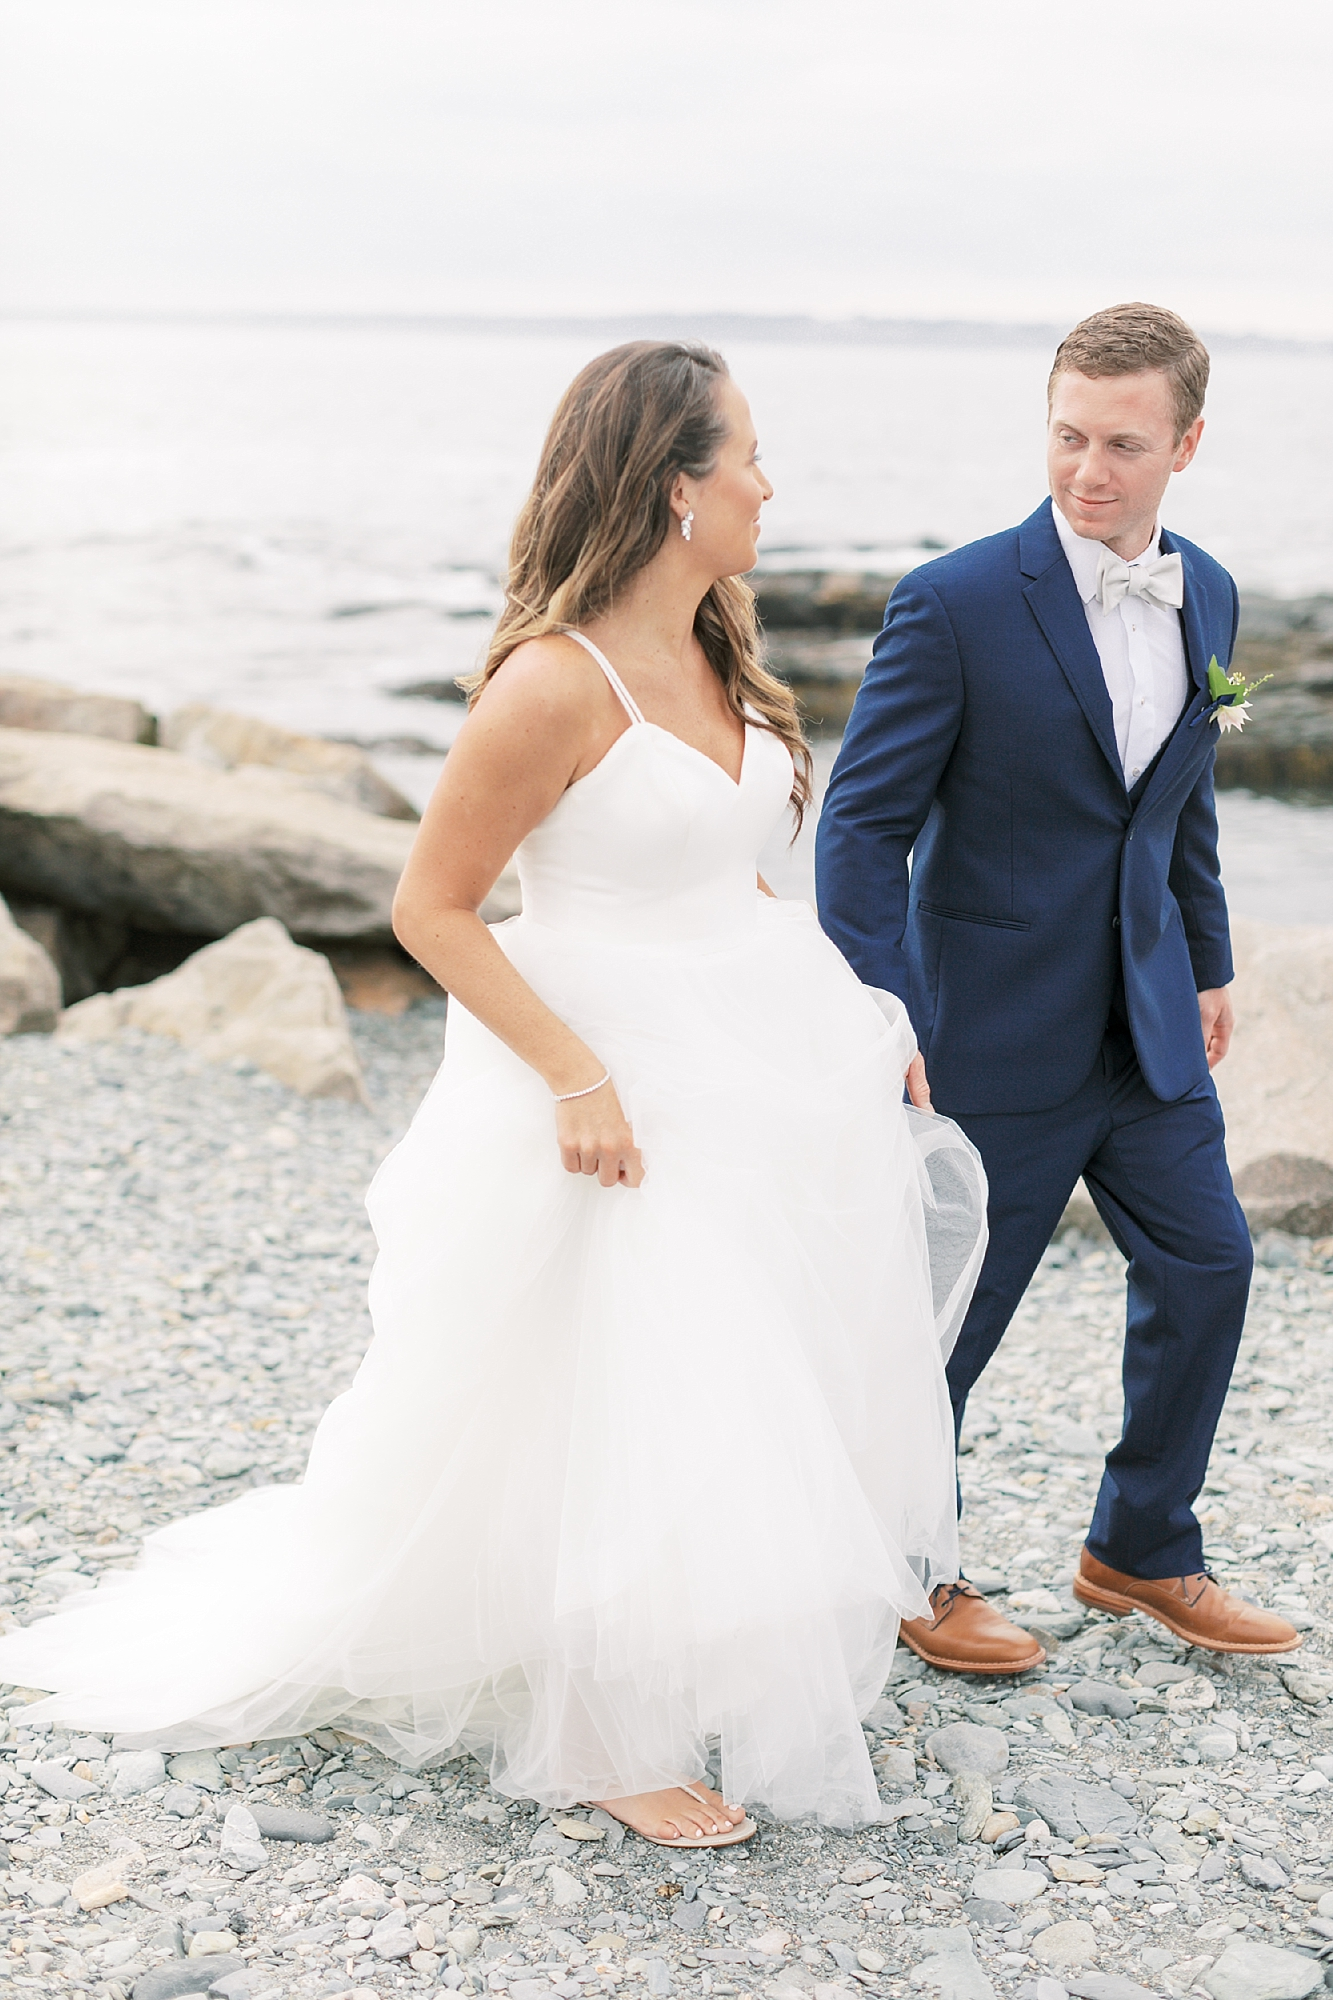 Coastal and Authentic Film Wedding Photography in Newport Rhode Island by Magdalena Studios 0031